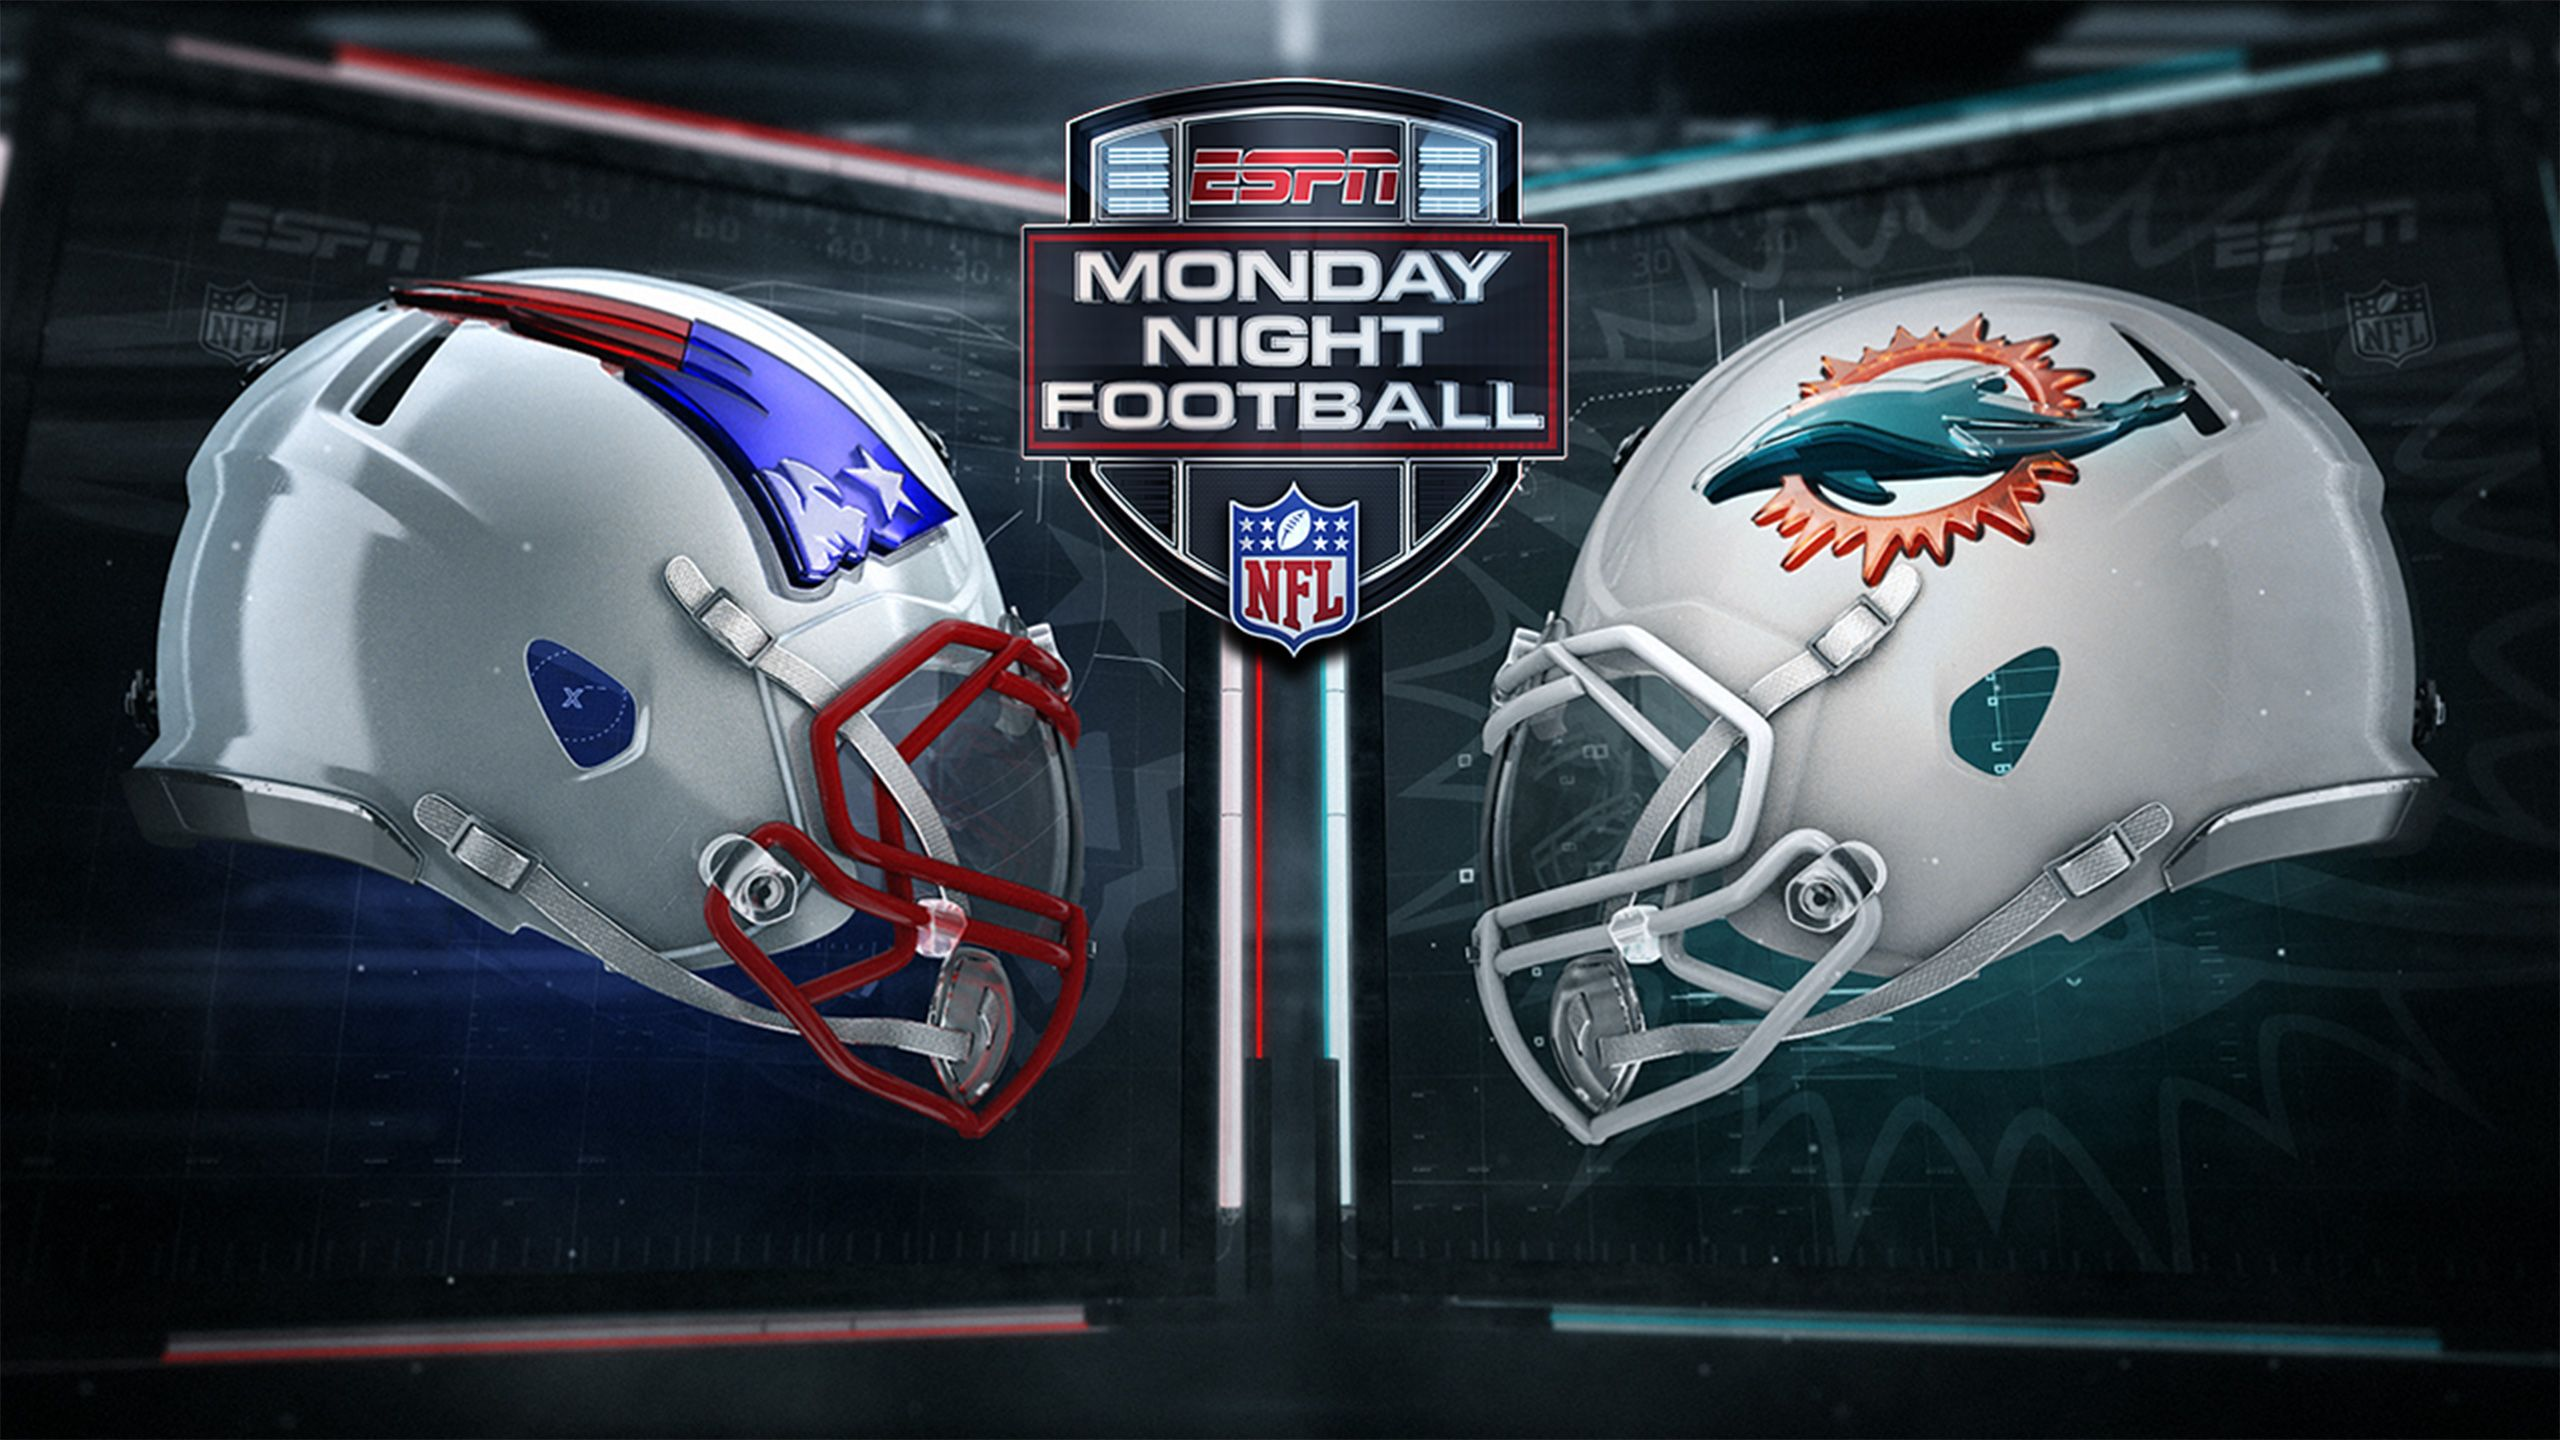 New England Patriots vs. Miami Dolphins